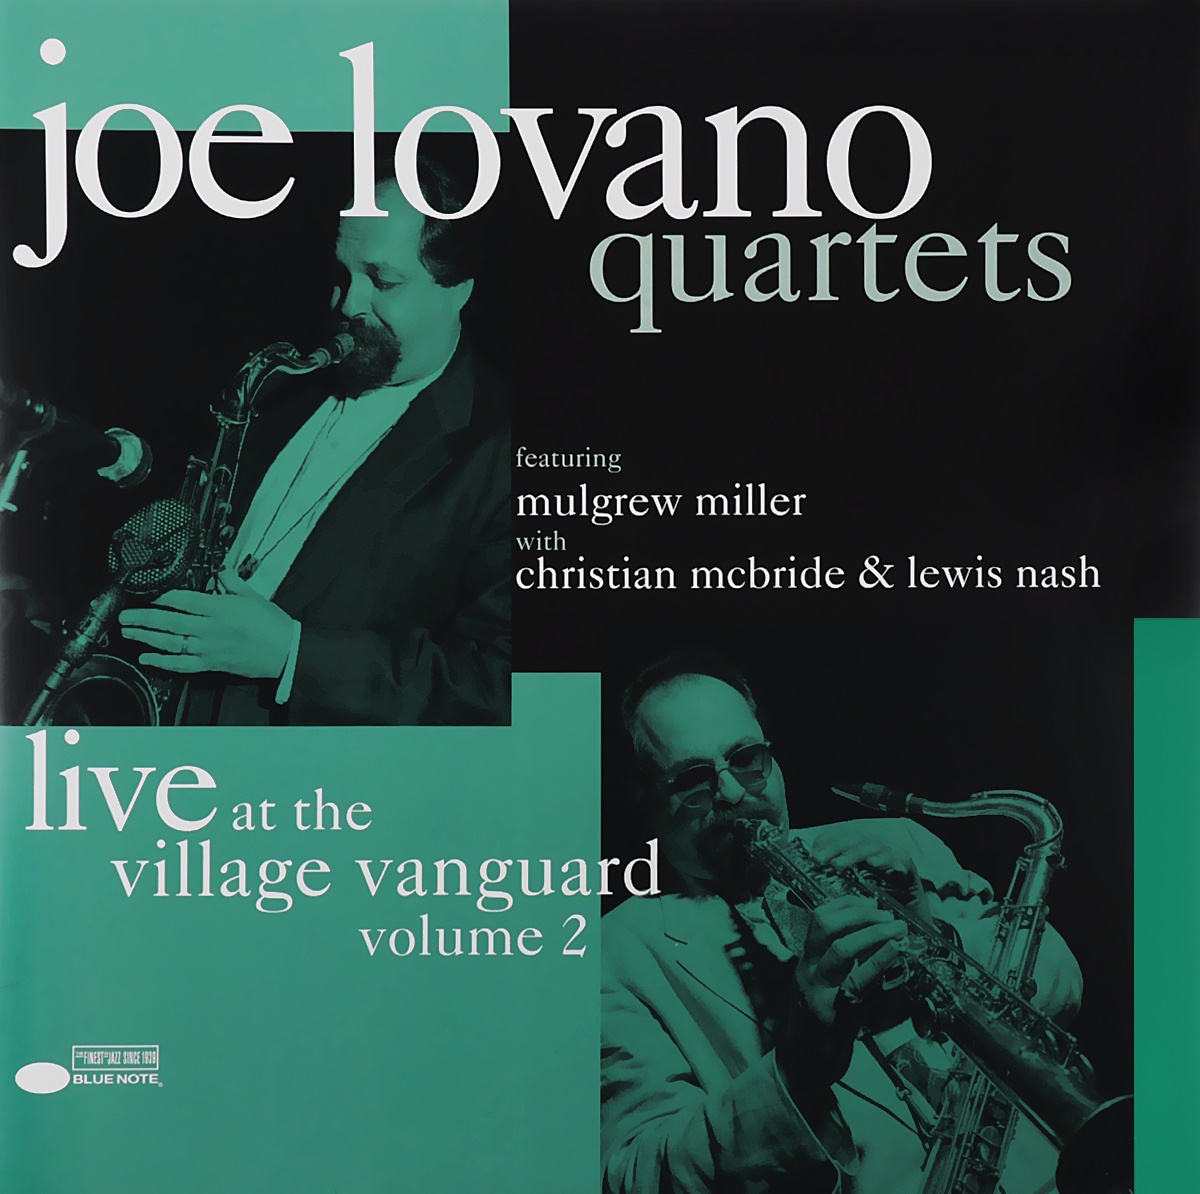 Joe Lovano Quartets Joe Lovano Quartets. Live At The Village Vanguard. Volume 2 (2 LP) сонни роллинз wilbur ware элвин джонс sonny rollins a night at the village vanguard lp